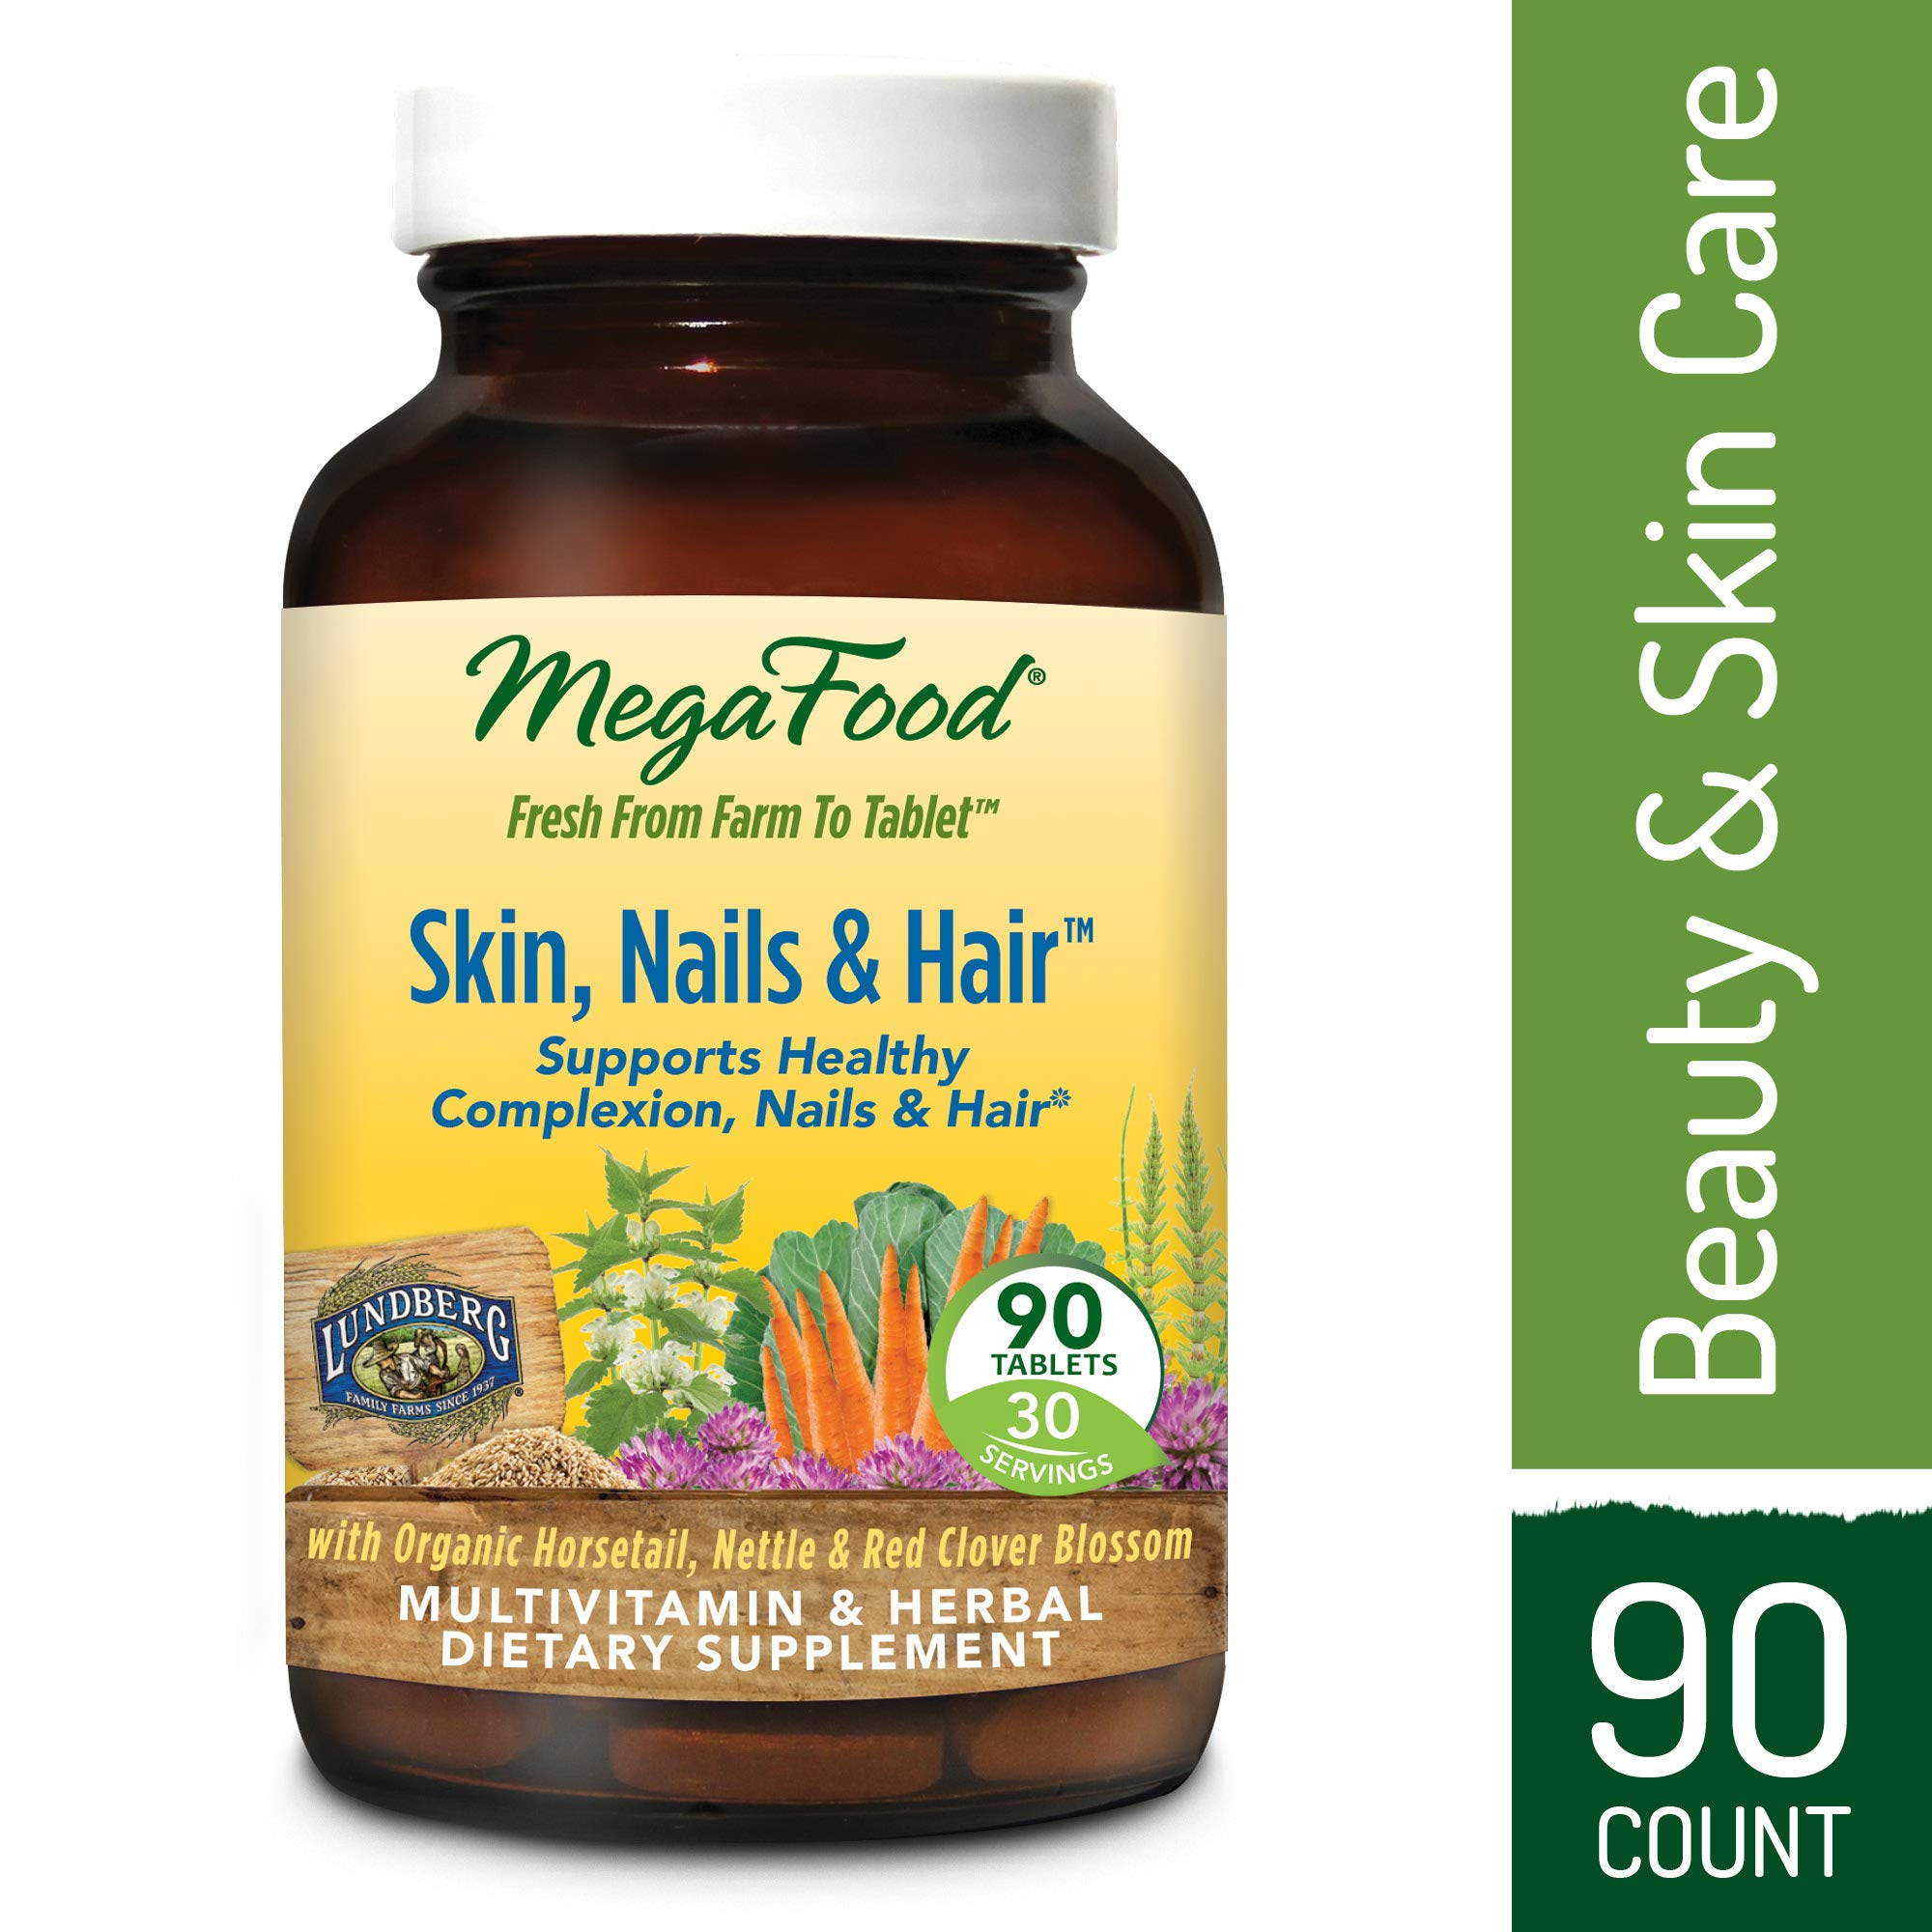 MegaFood - Skin, Nails, & Hair, Multivitamin Support for Hormone Balance to Encourage a Healthy Complexion, Strong Nails, and Beautiful Hair with Biotin, Vegan, Gluten-Free, Non-GMO, 90 Tablets (FFP)